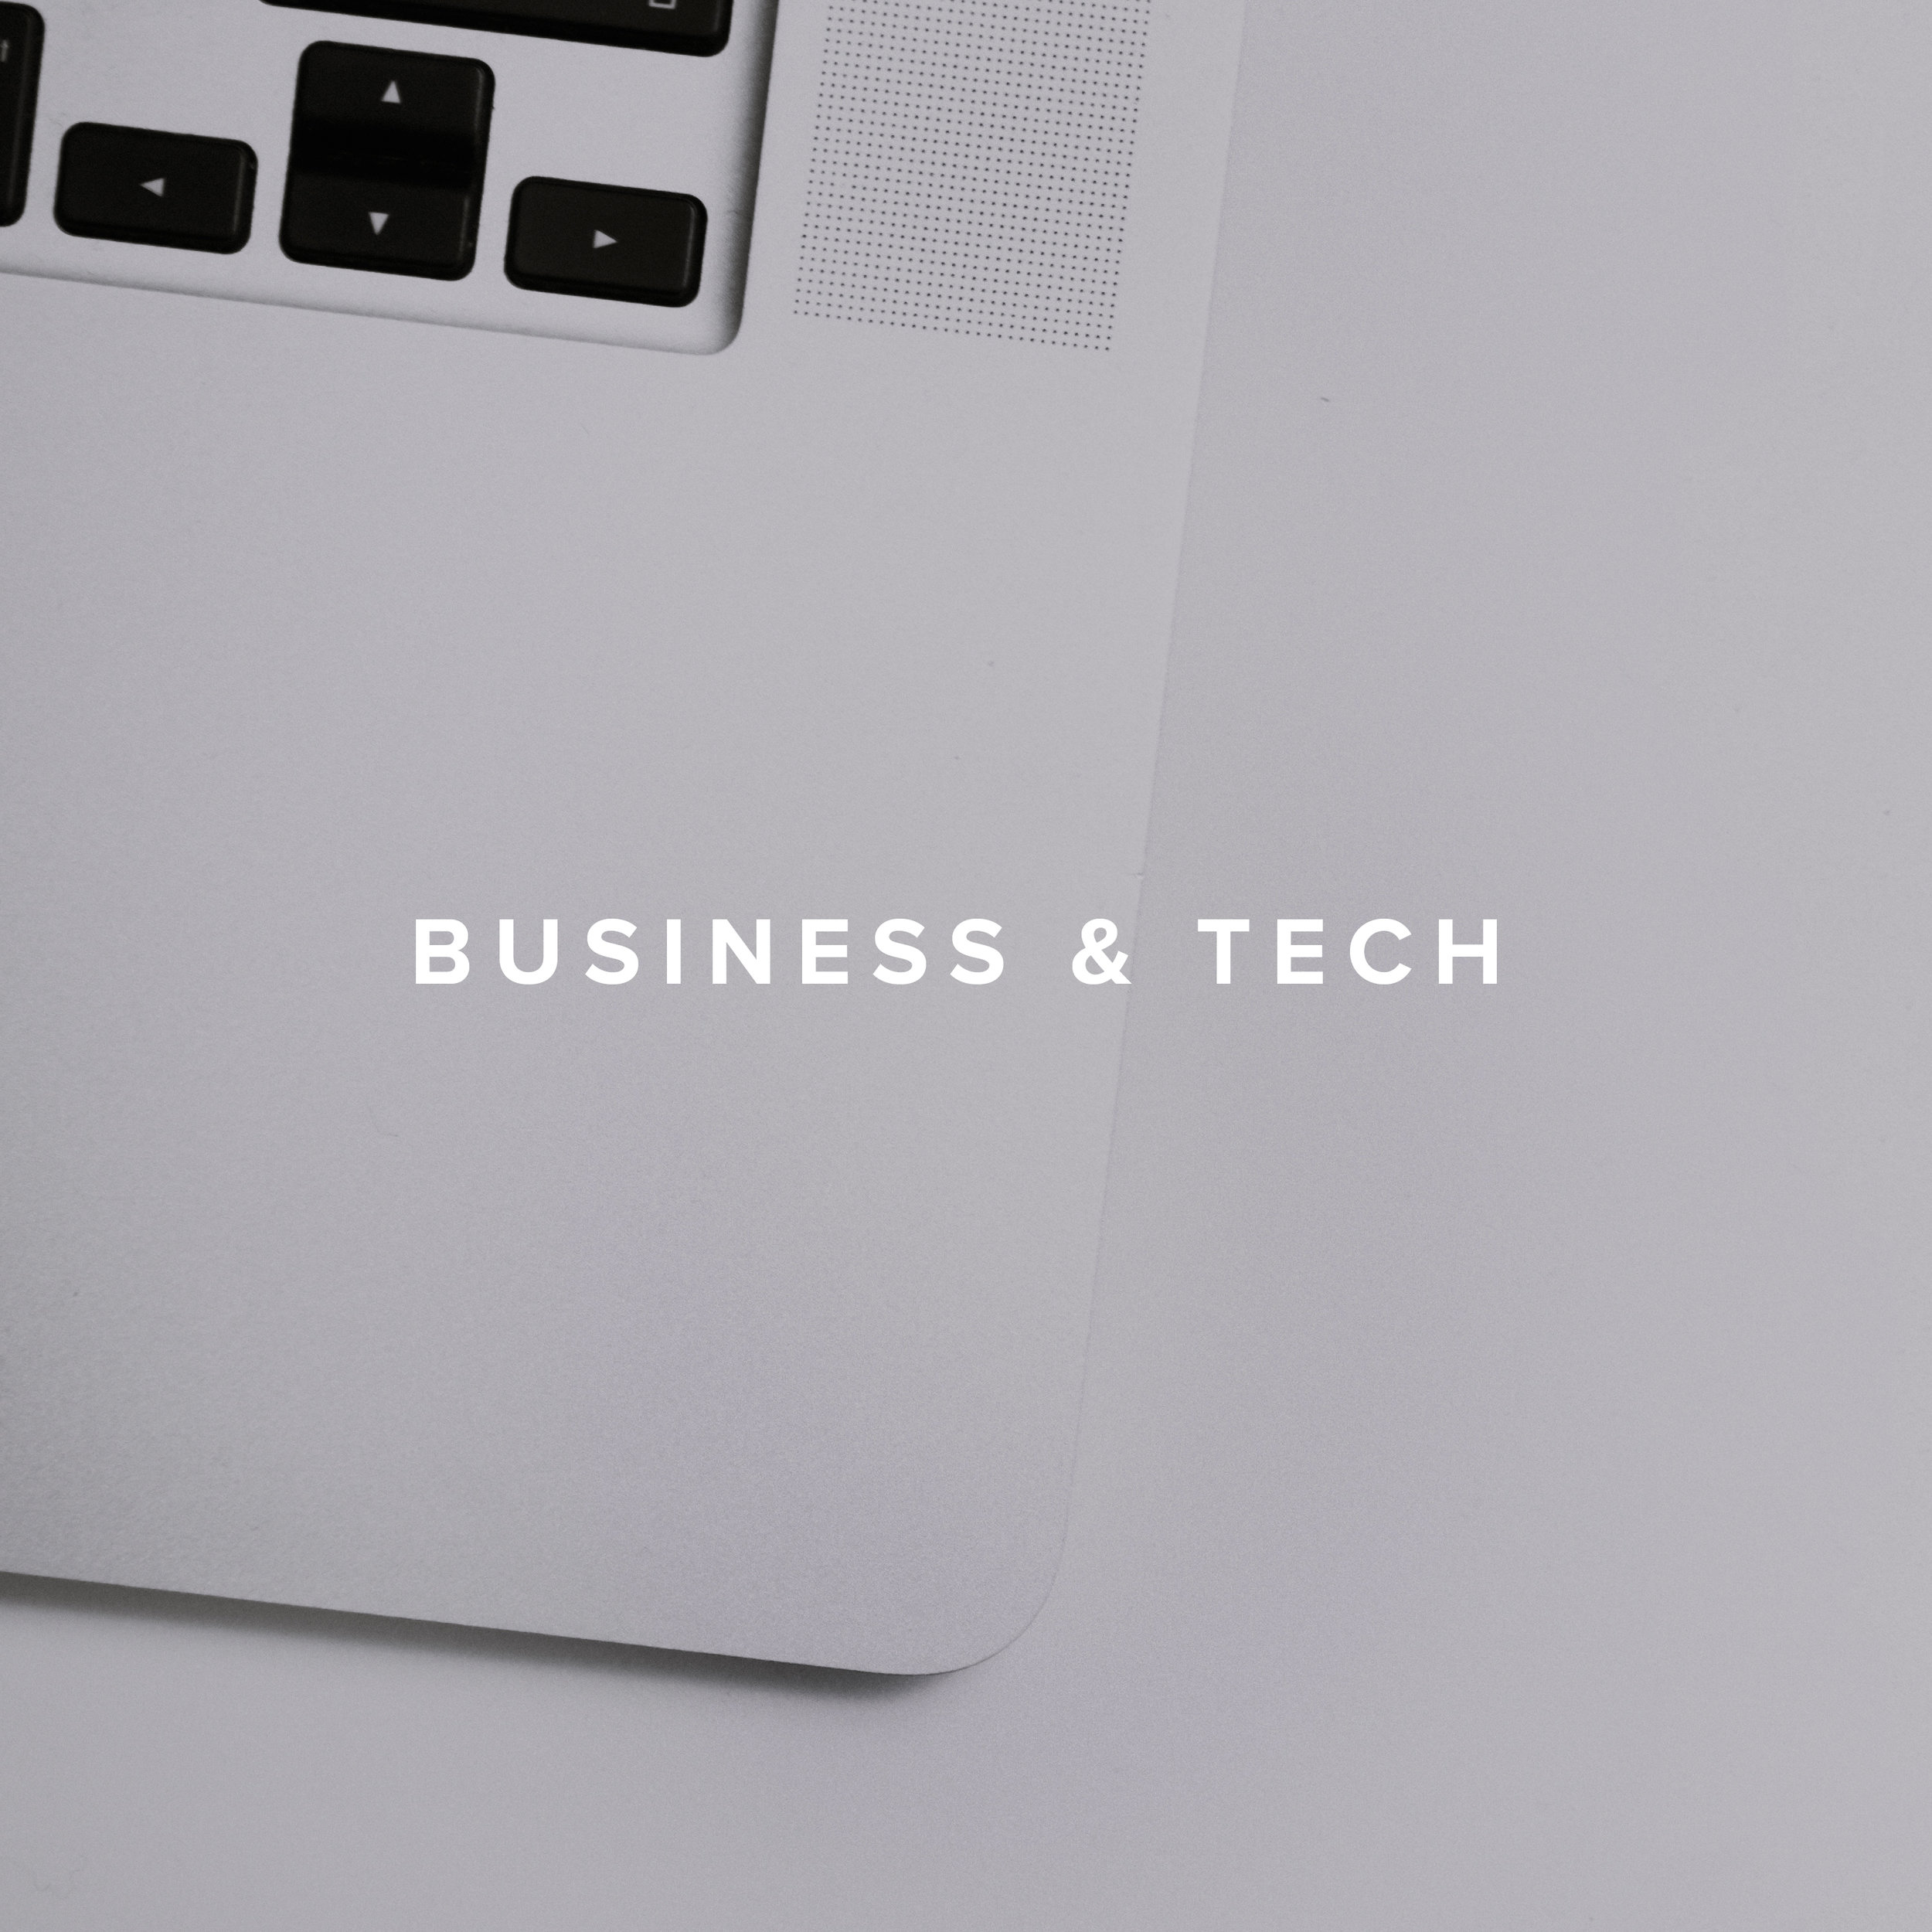 Swipe Right. Technology is an integral part of any business. We tell that story.